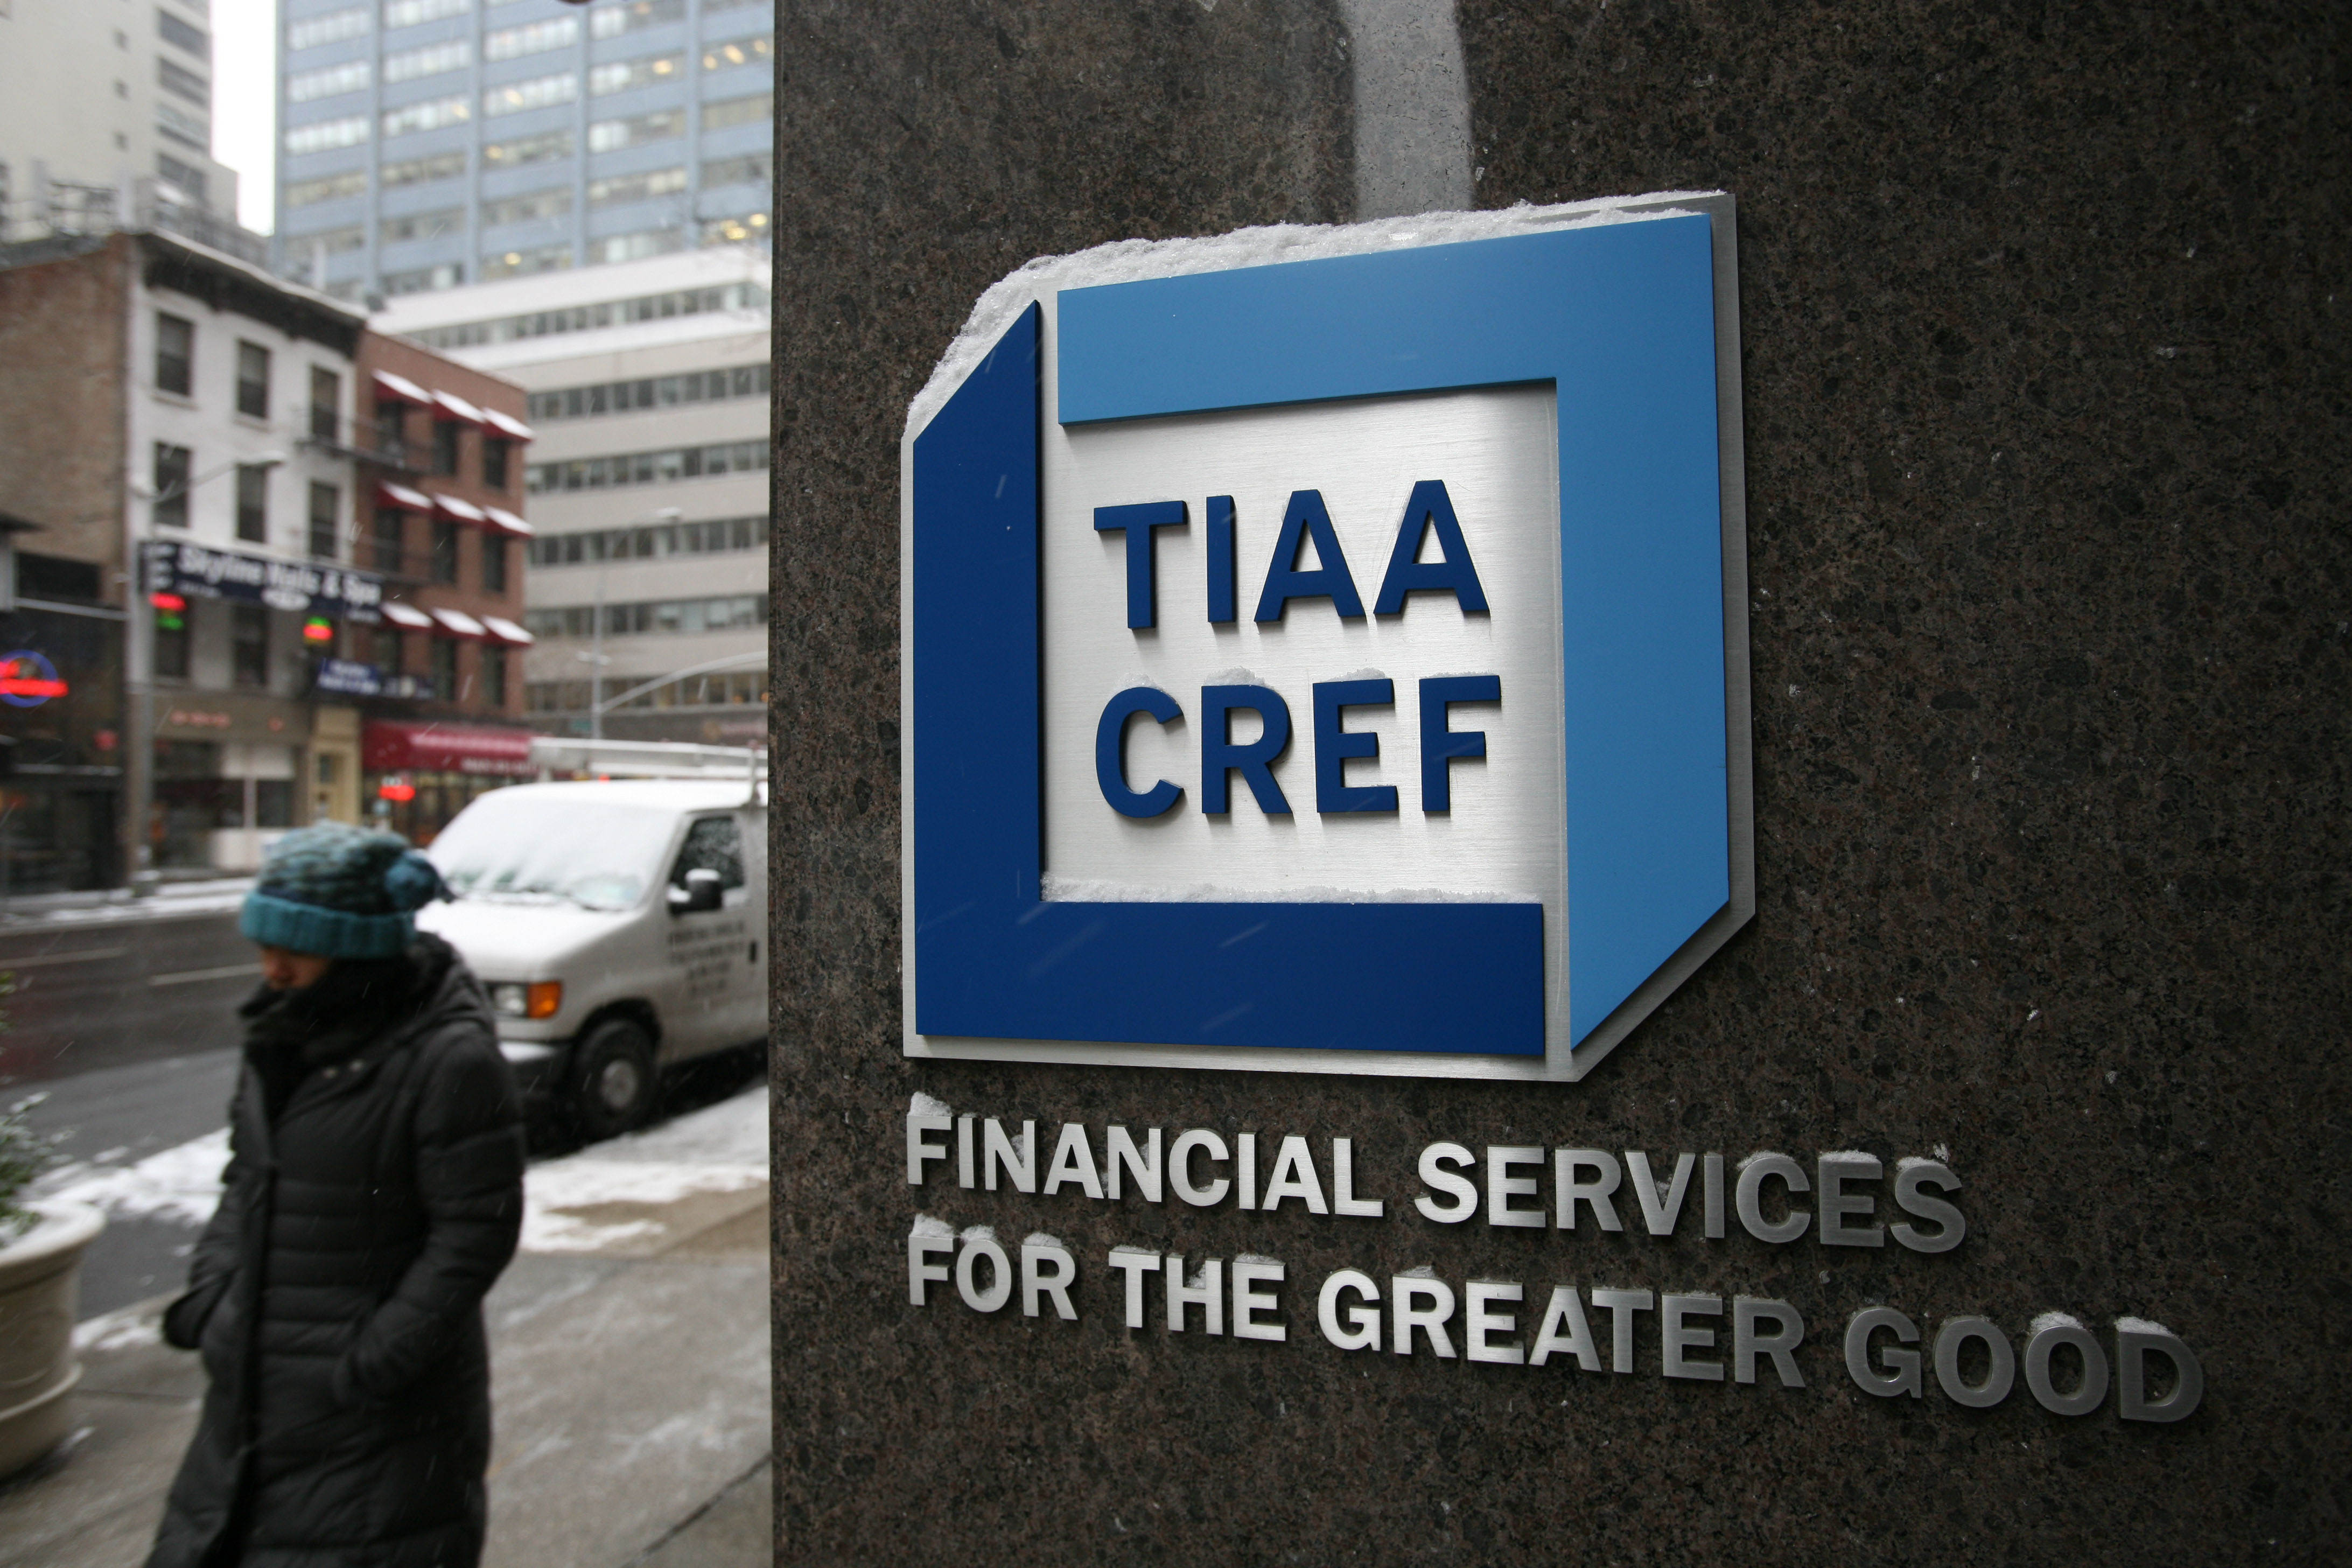 TIAA Names Former Treasury Official as Chief Compliance Officer